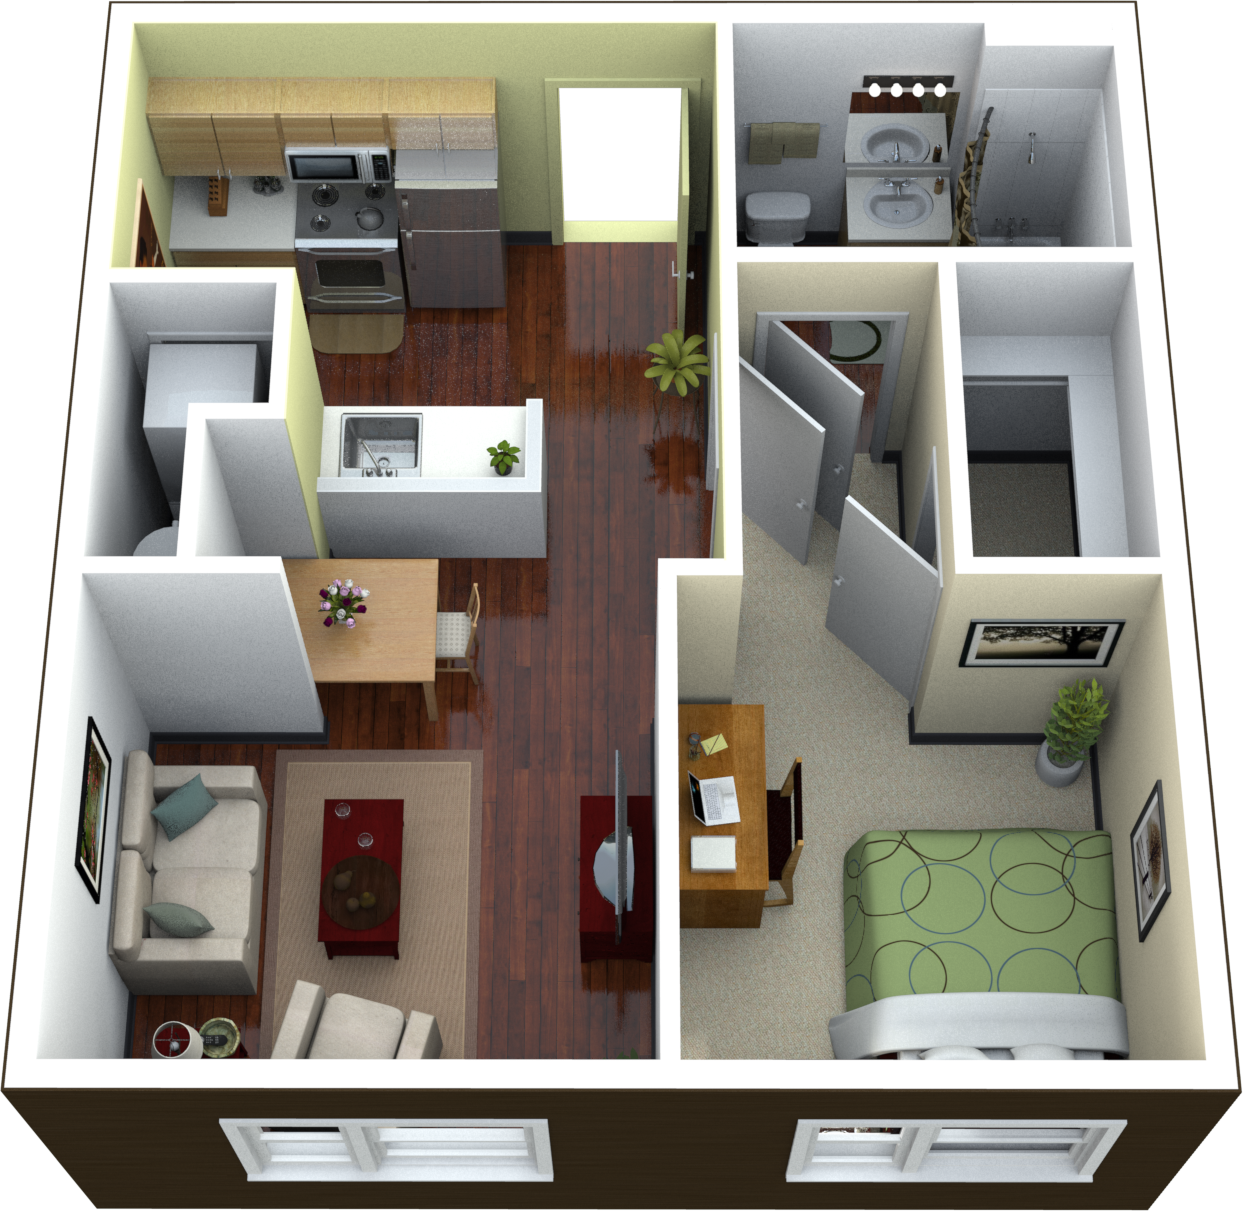 1 bedroom floor plans for apartment design ideas 2017 for Small 1 room flat